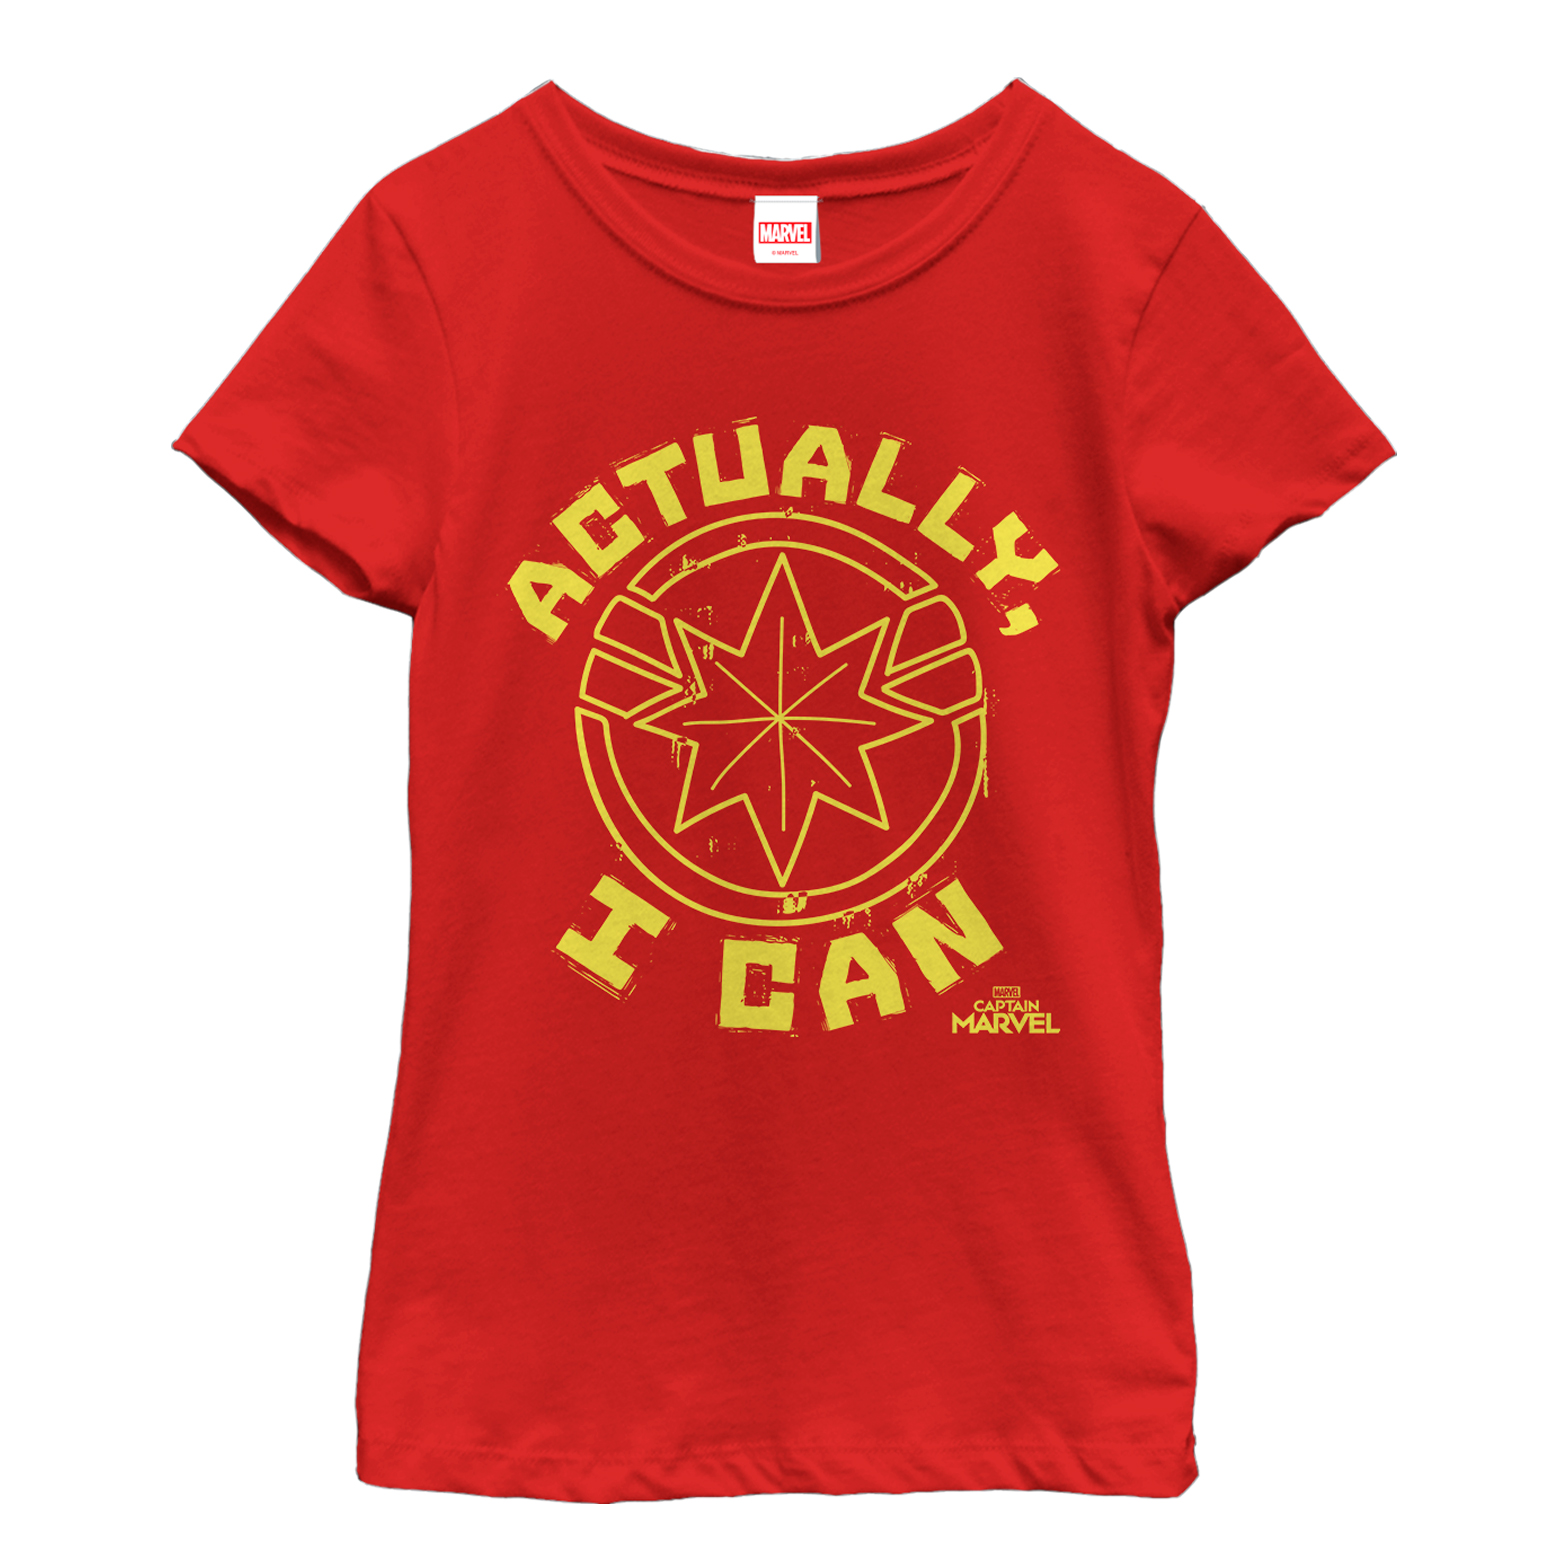 Marvel Girls' Captain Marvel Actually Can Quote T-Shirt